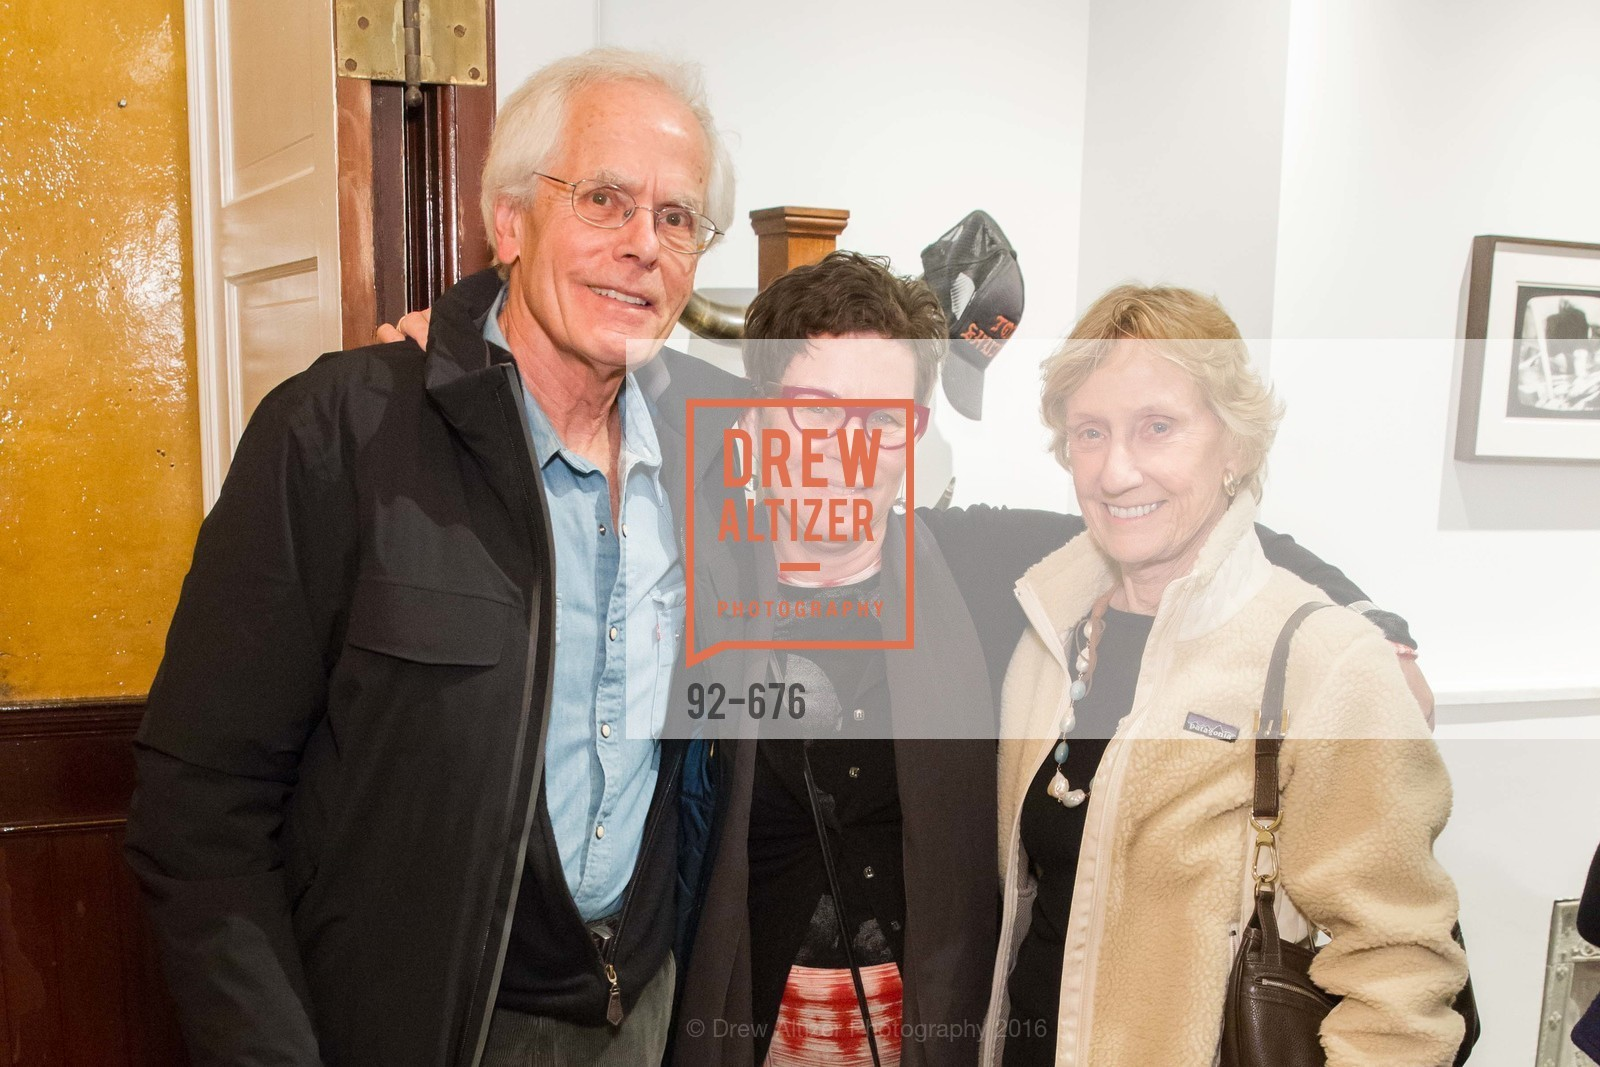 Joachim Bechtle, Maria Makela, Nancy Bechtle, 500 Capp Street Preview Reception, 500 Capp Street Foundation. 500 Capp Street, January 7th, 2016,Drew Altizer, Drew Altizer Photography, full-service agency, private events, San Francisco photographer, photographer california